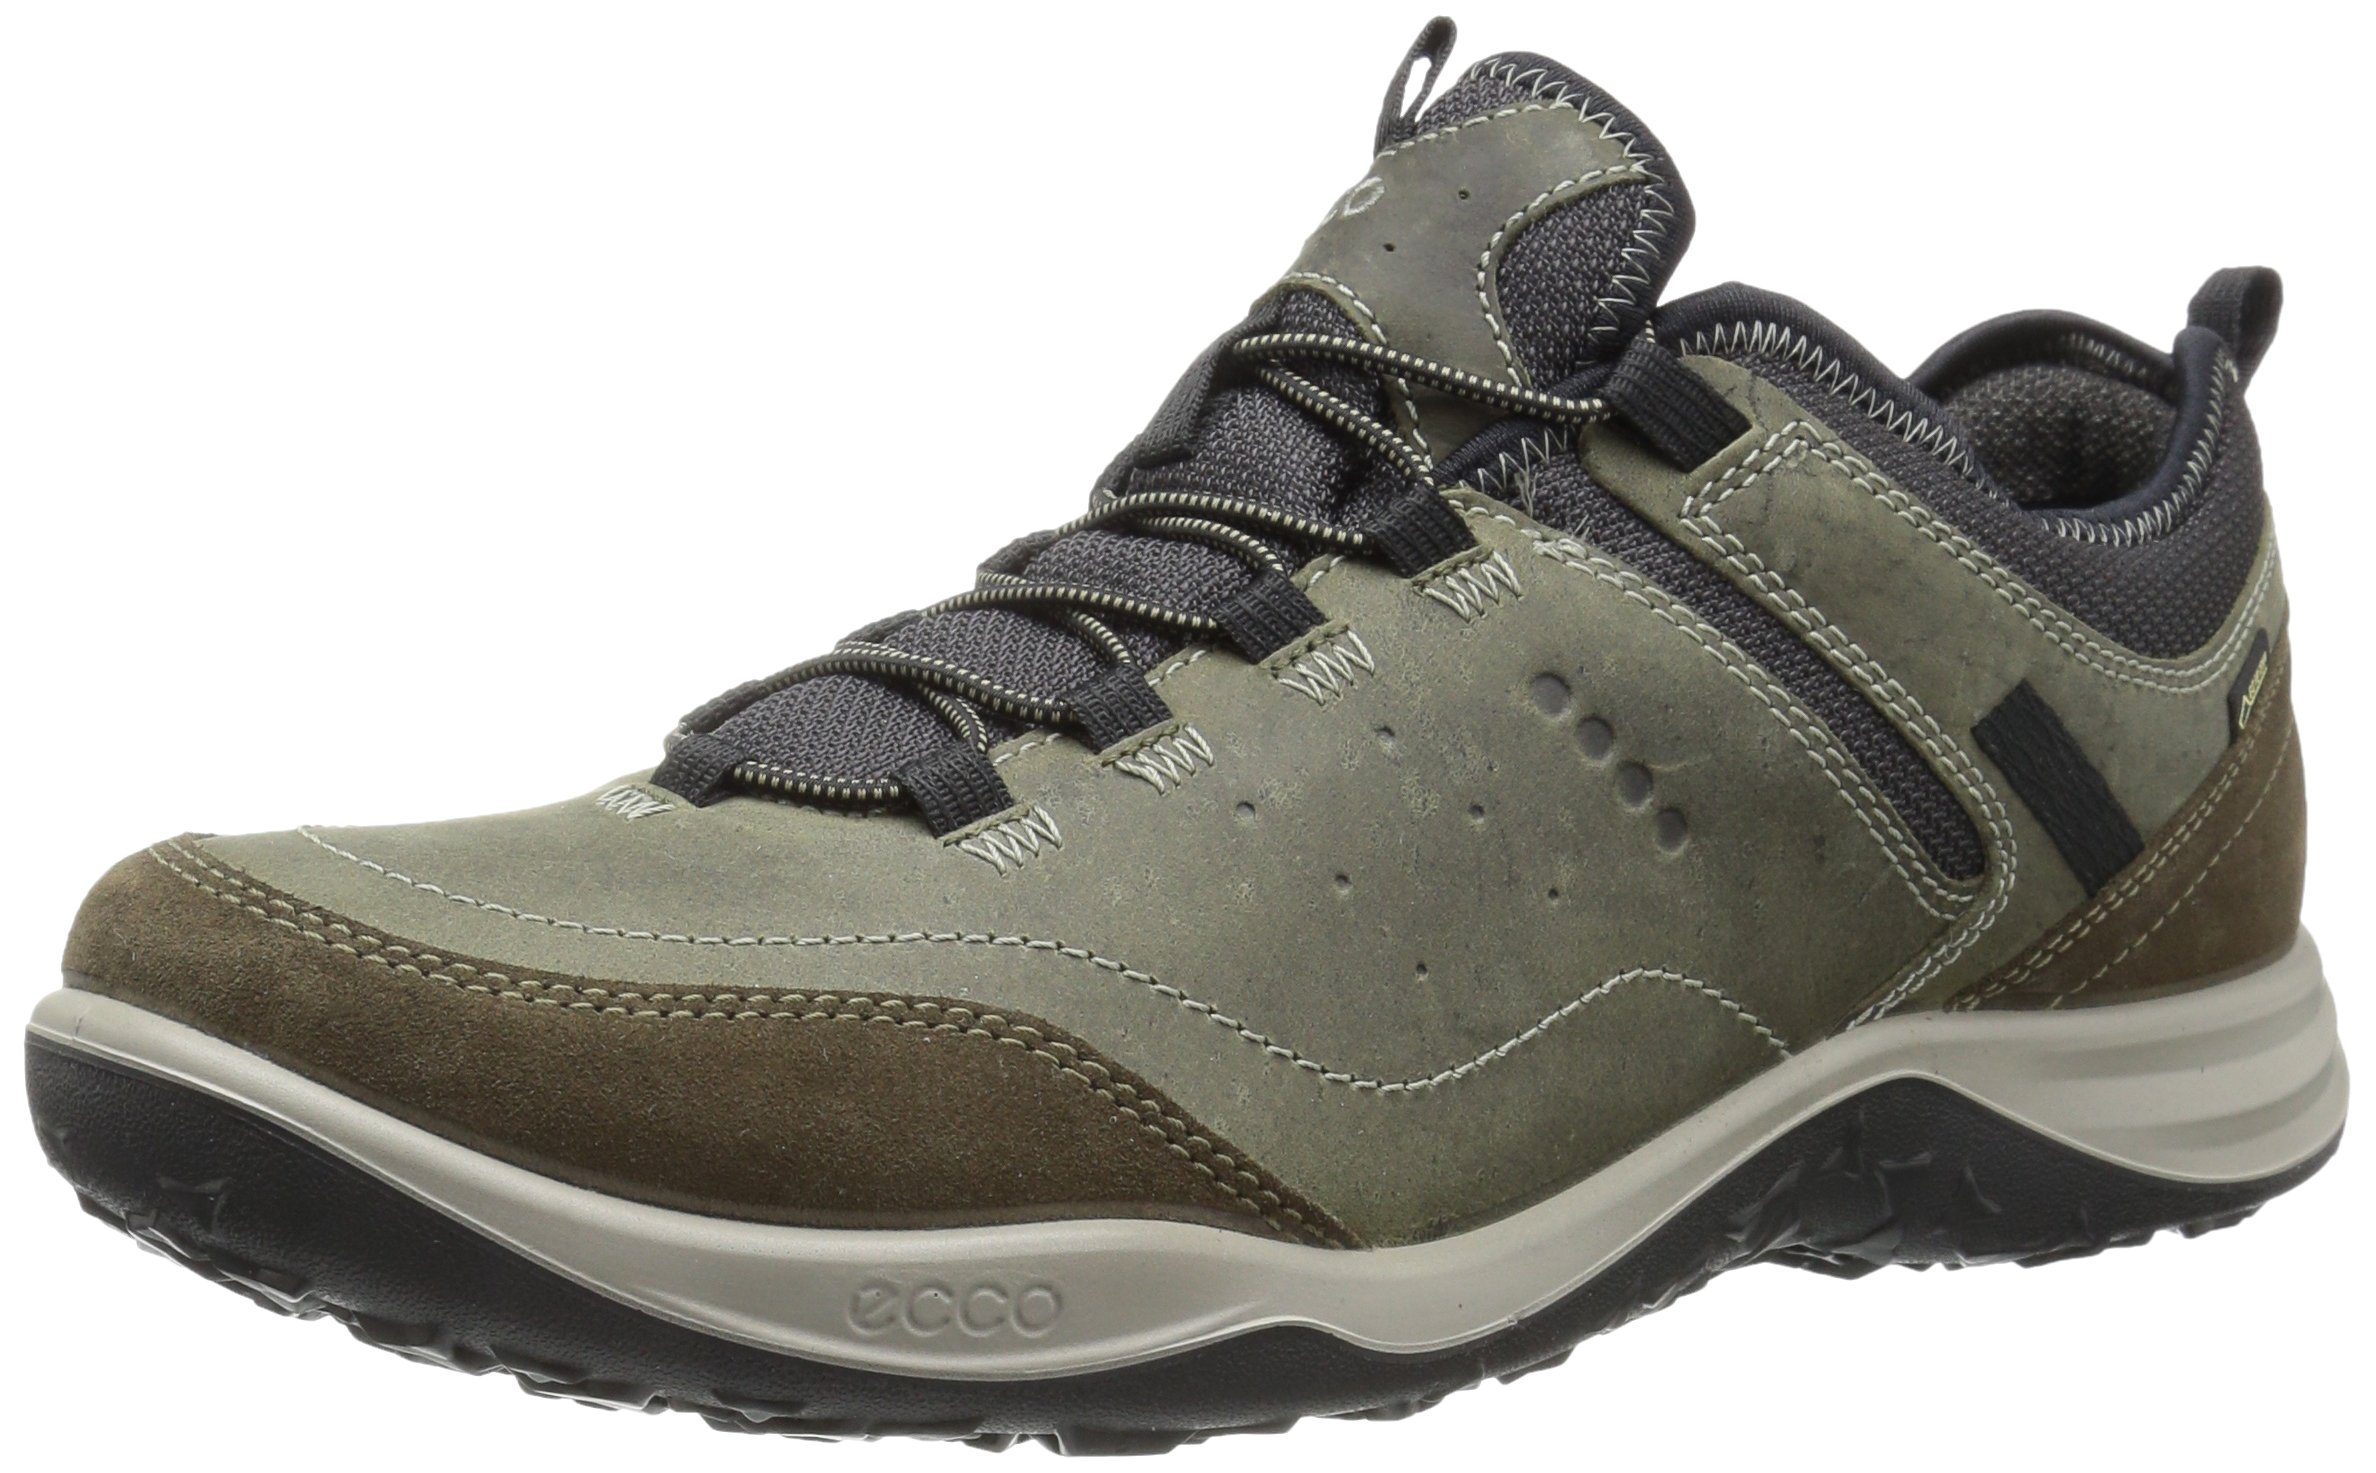 ECCO Men's Esphino GORE-TEX waterproof Hiking shoe, Tarmac/Tarmac, 44 EU / 10-10.5 US by ECCO